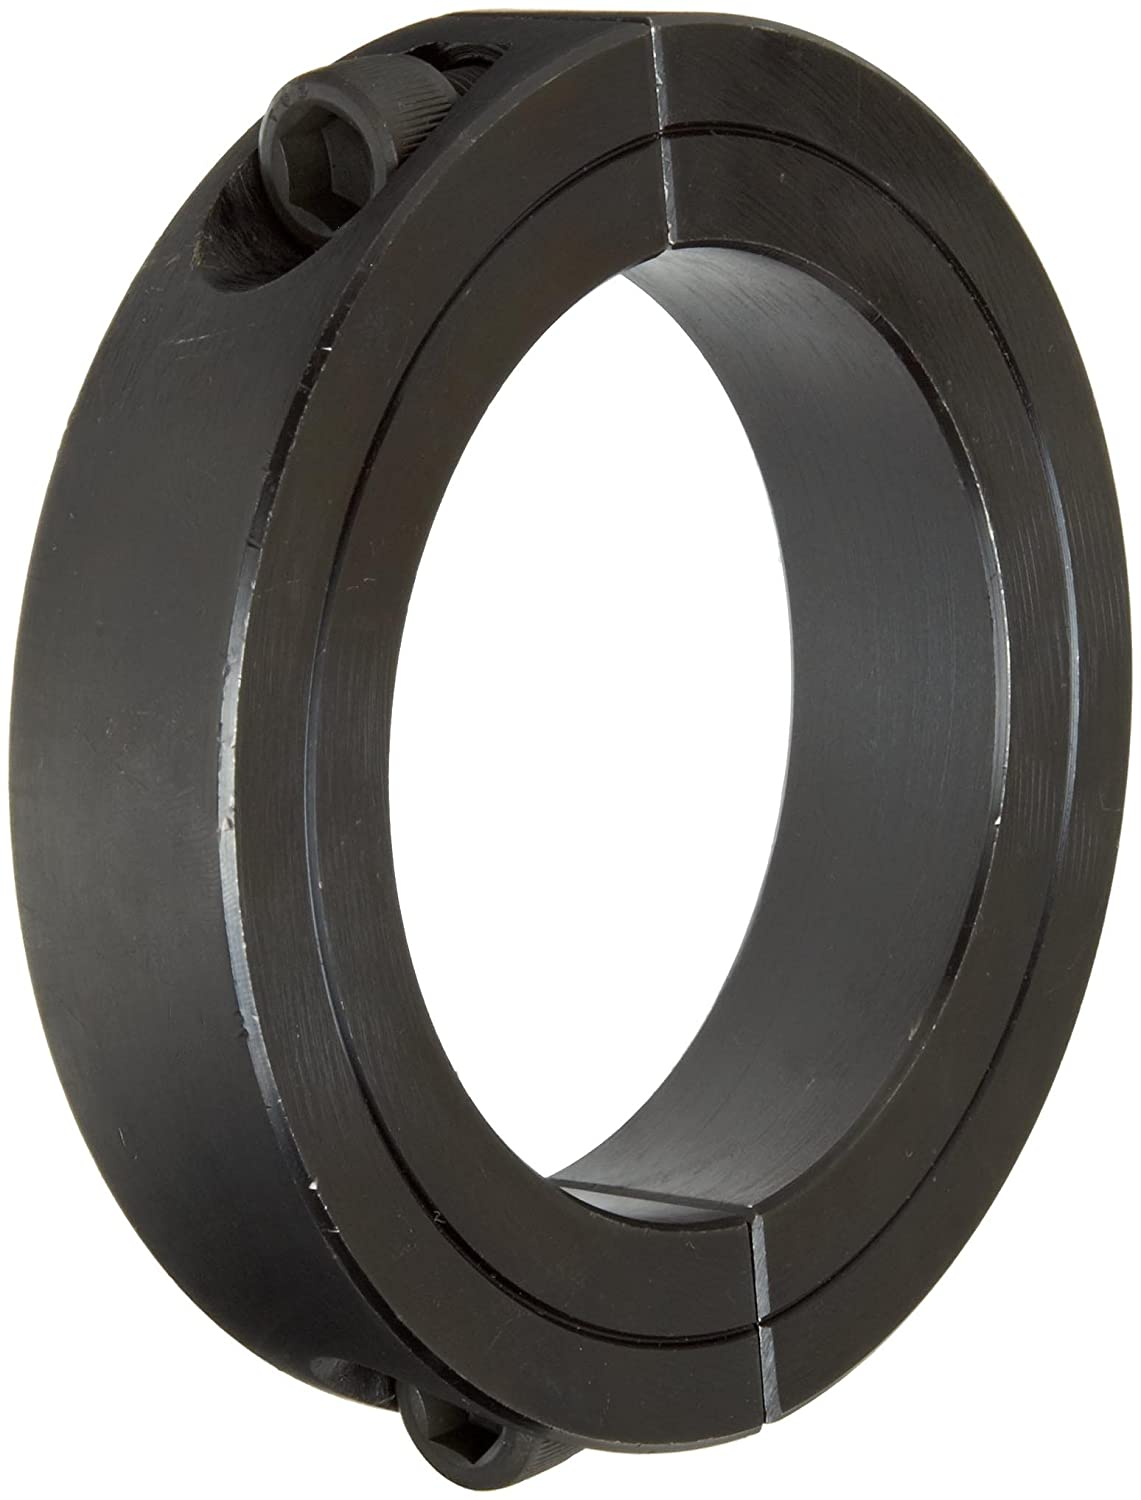 Climax Metal 2C-106 Steel Two-Piece Clamping Collar 1-1//16 Bore Size Black Oxide Plating With 1//4-28 x 5//8 Set Screw 1-7//8 OD